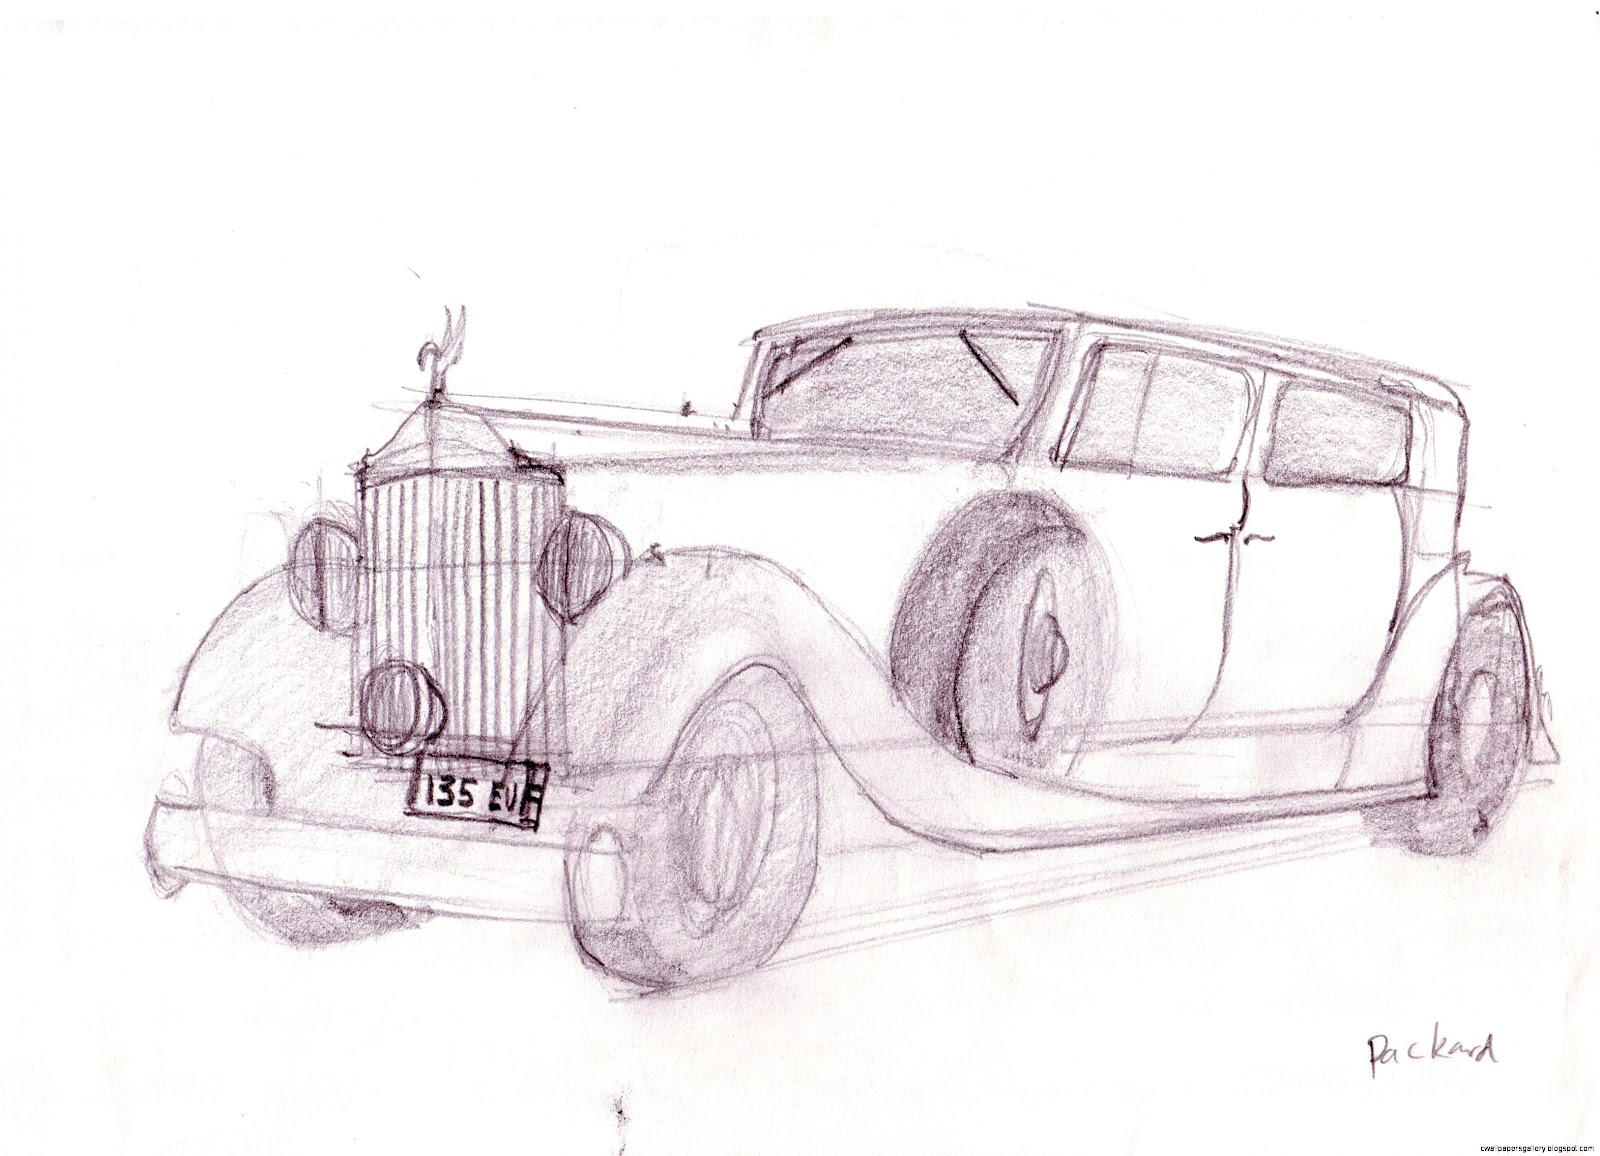 Sketch Drawings of Old Cars